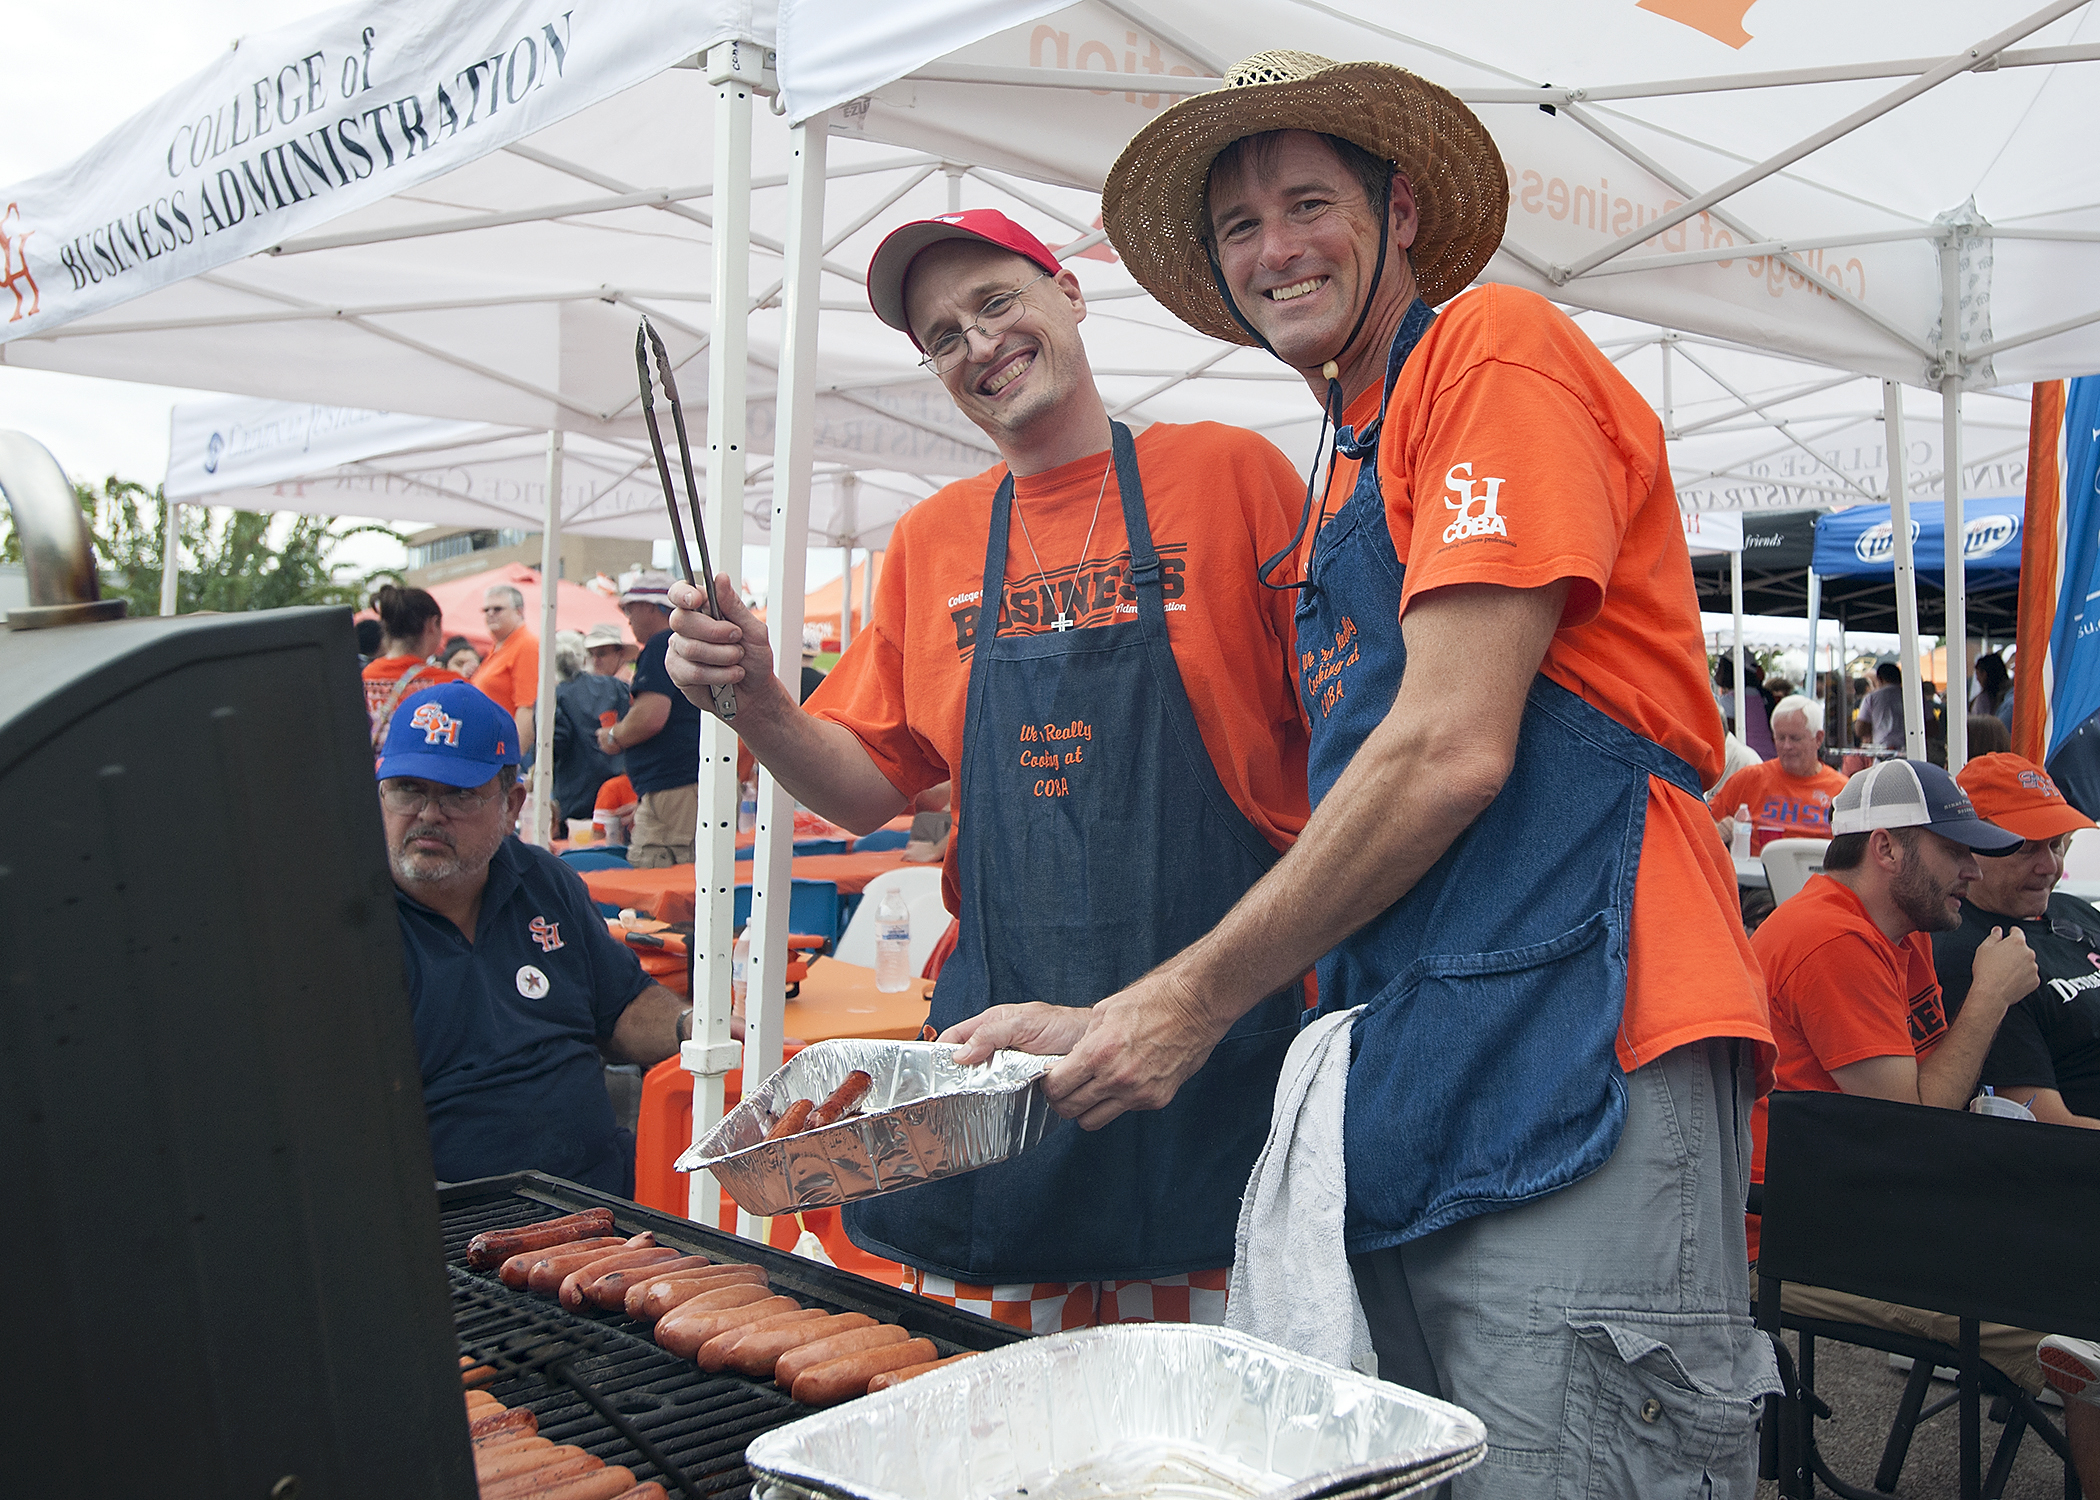 Two Bearkat fans grill some hotdogs, surrounded by a sea of orange and white tents and people.